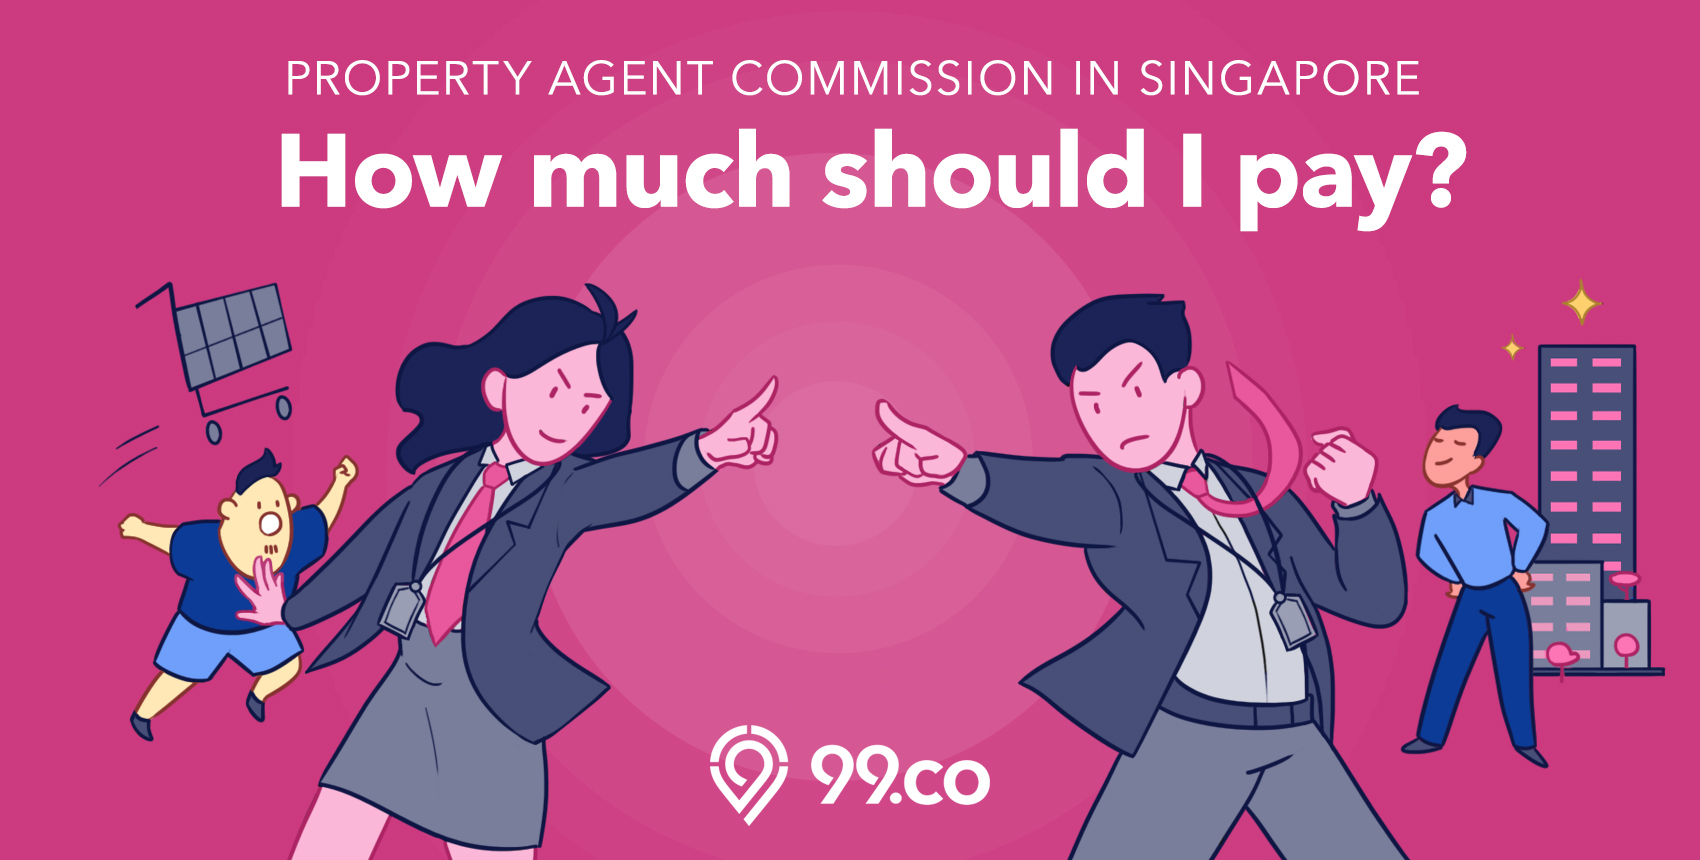 Property agent commission in Singapore: How much should I pay?